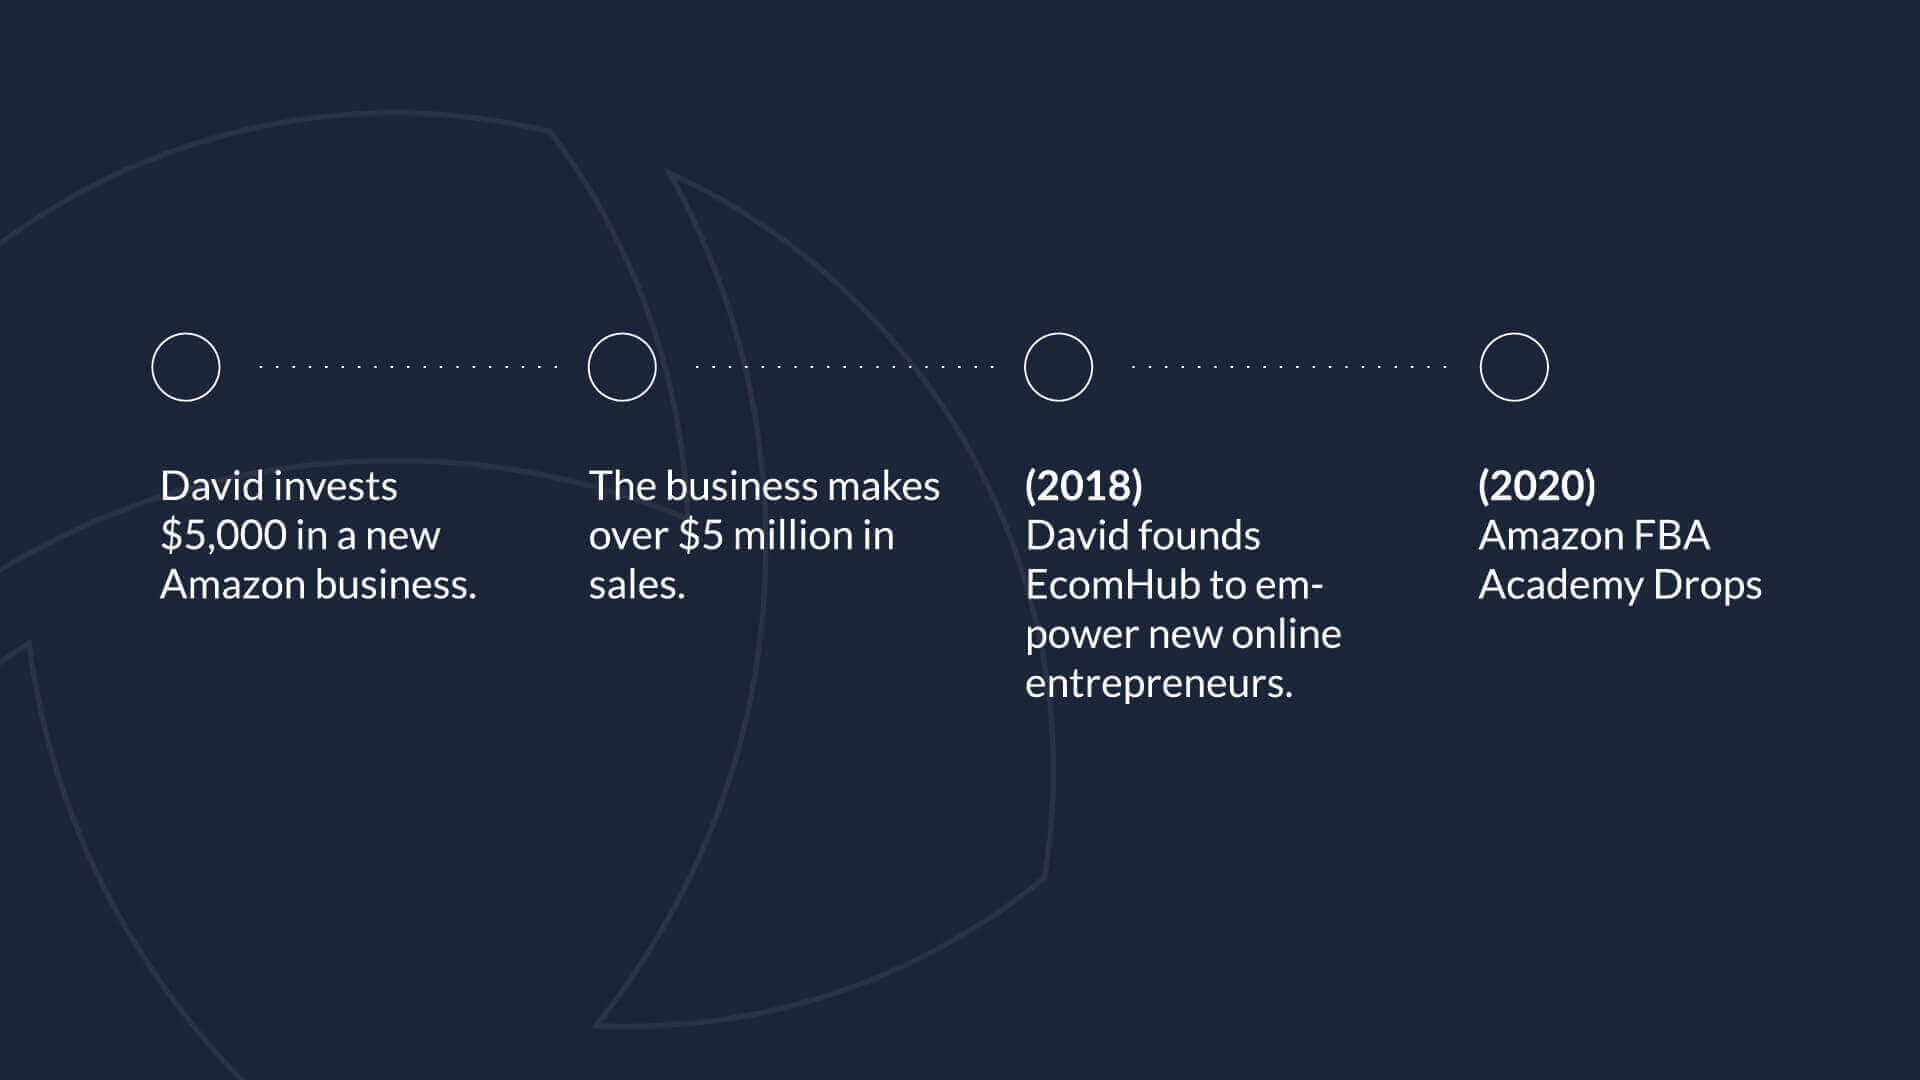 Timeline of EcomHub's story, beginning with David investing $5,000 into his new business and ending with Amazon FBA Academy launching in 2020.